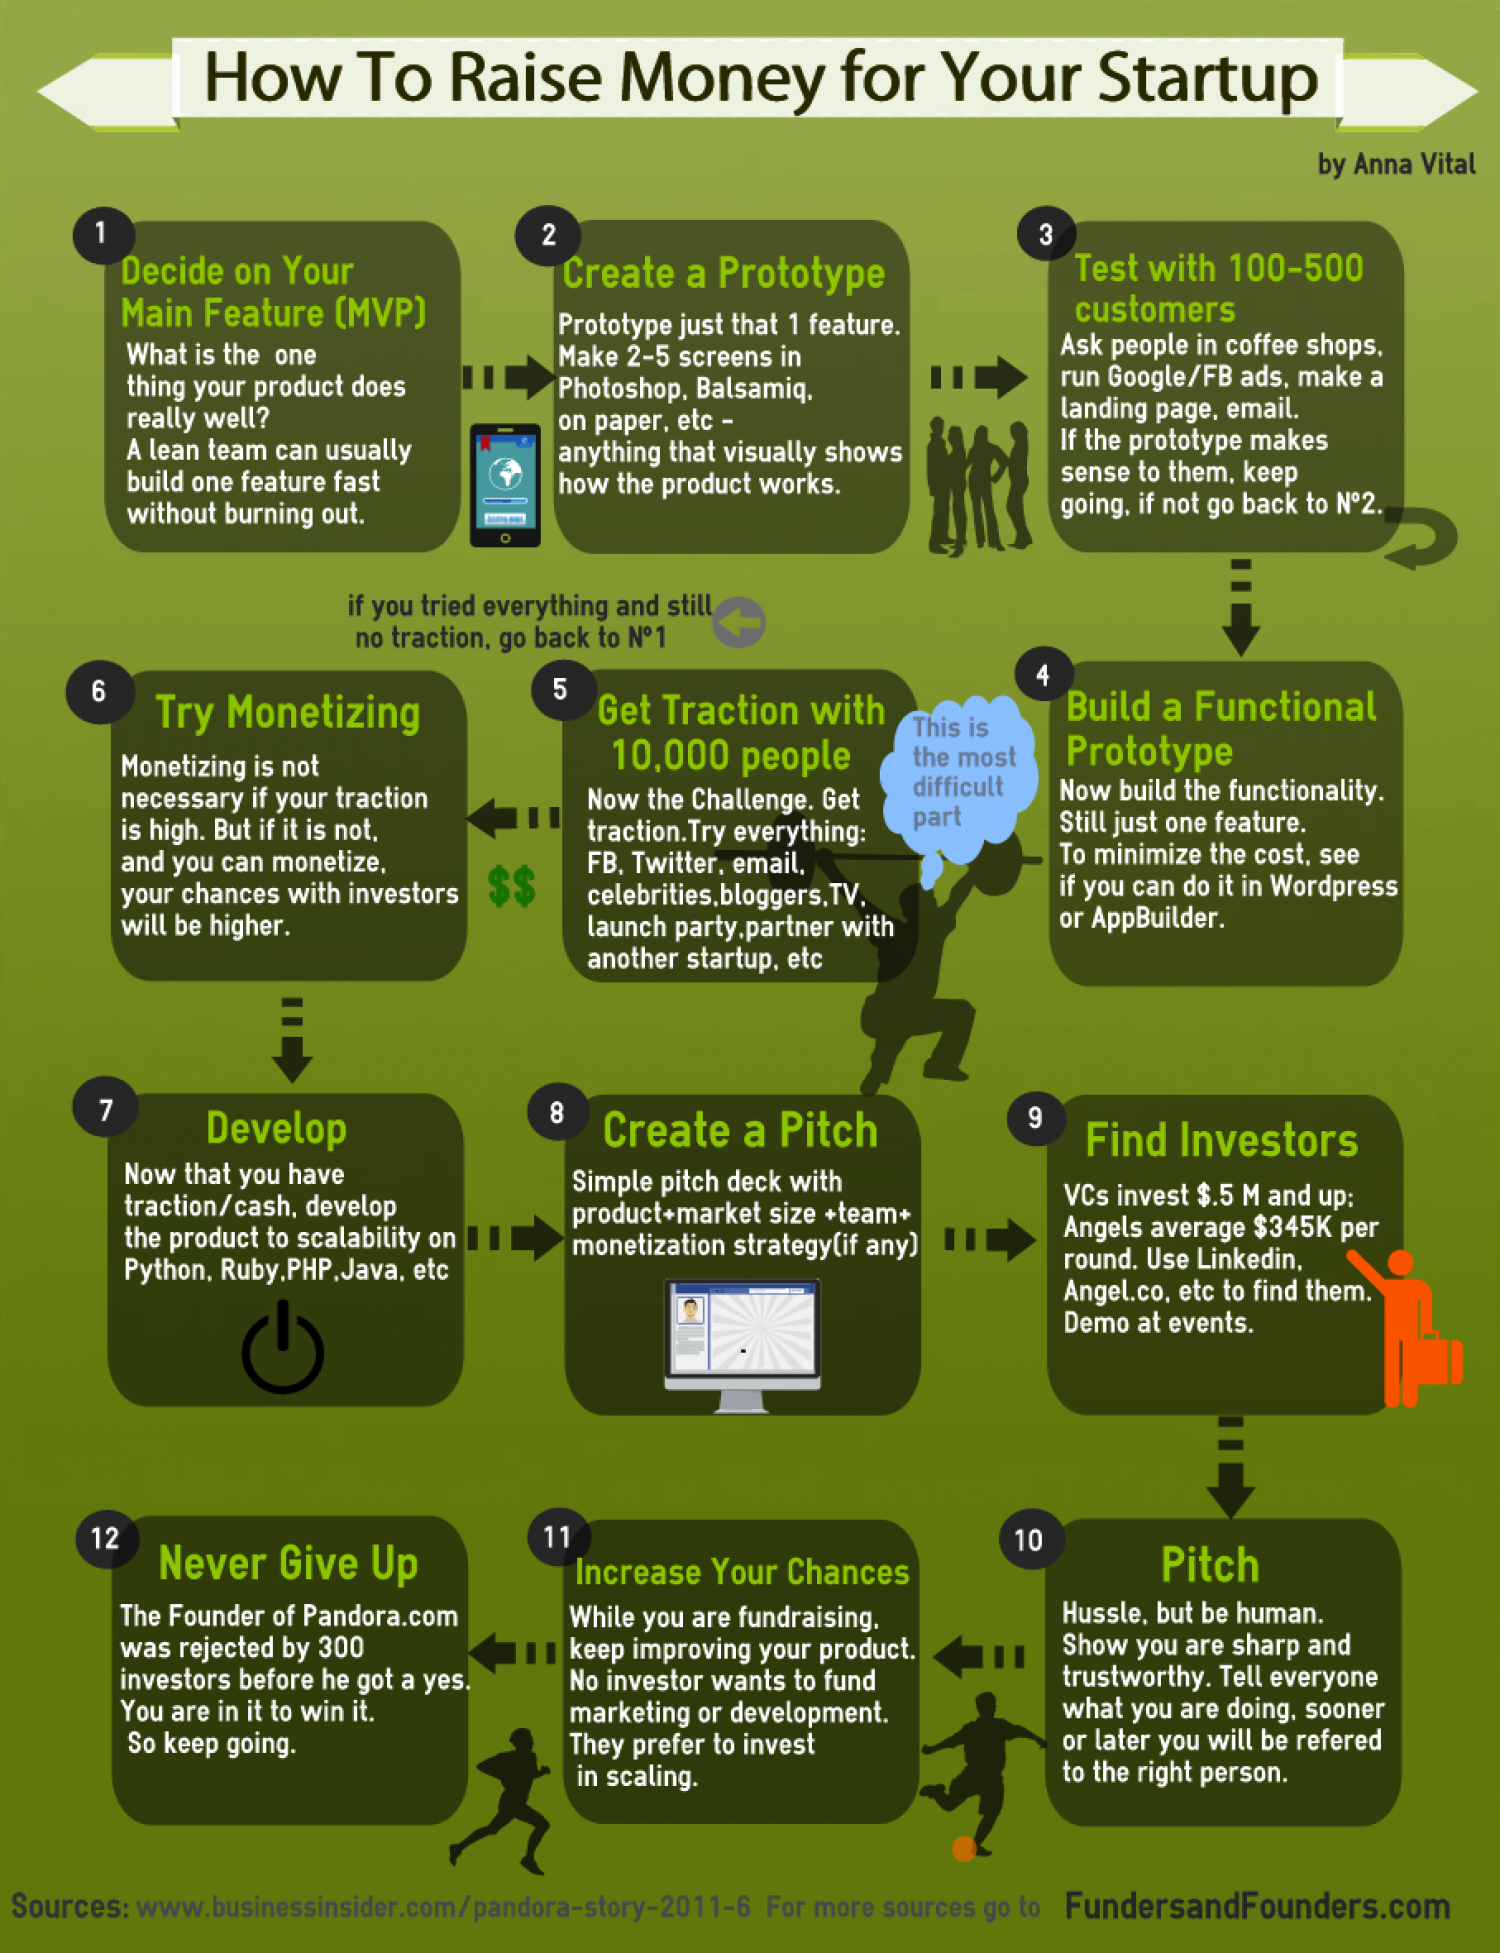 How To Raise Money For Your Startup Infographic